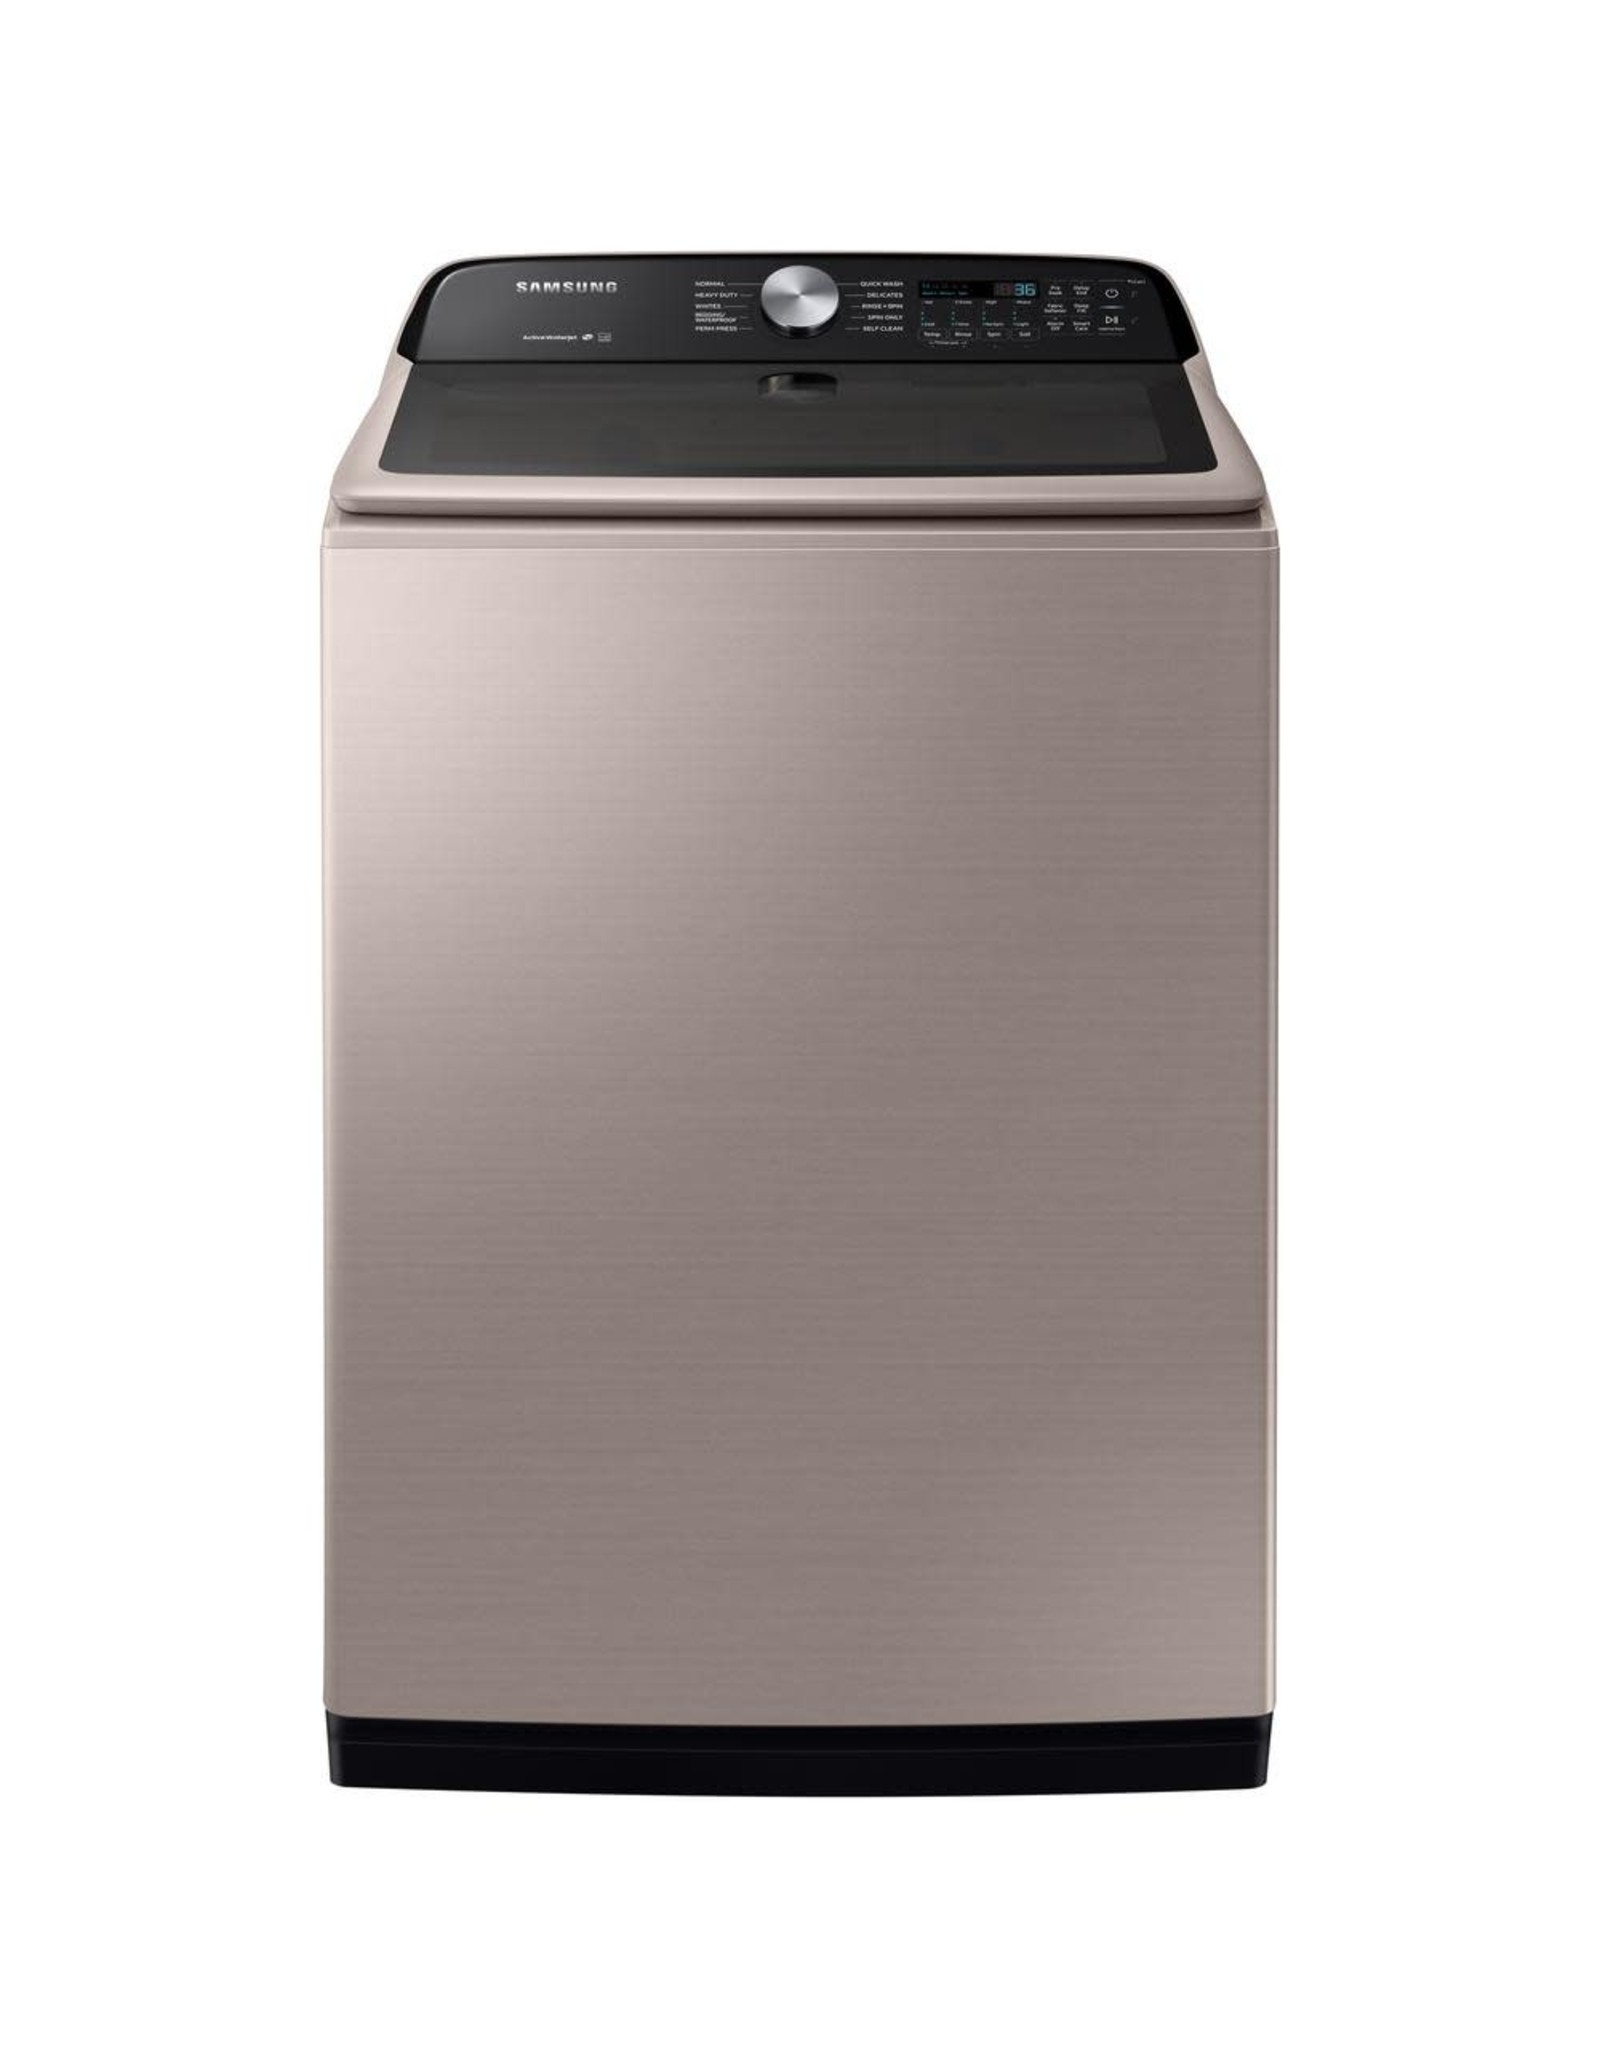 SAMSUNG Samsung 27 in. 5.0 cu. ft. High Efficiency Champagne Top Load Washing Machine with Active Wash Jet, ENERGY STAR